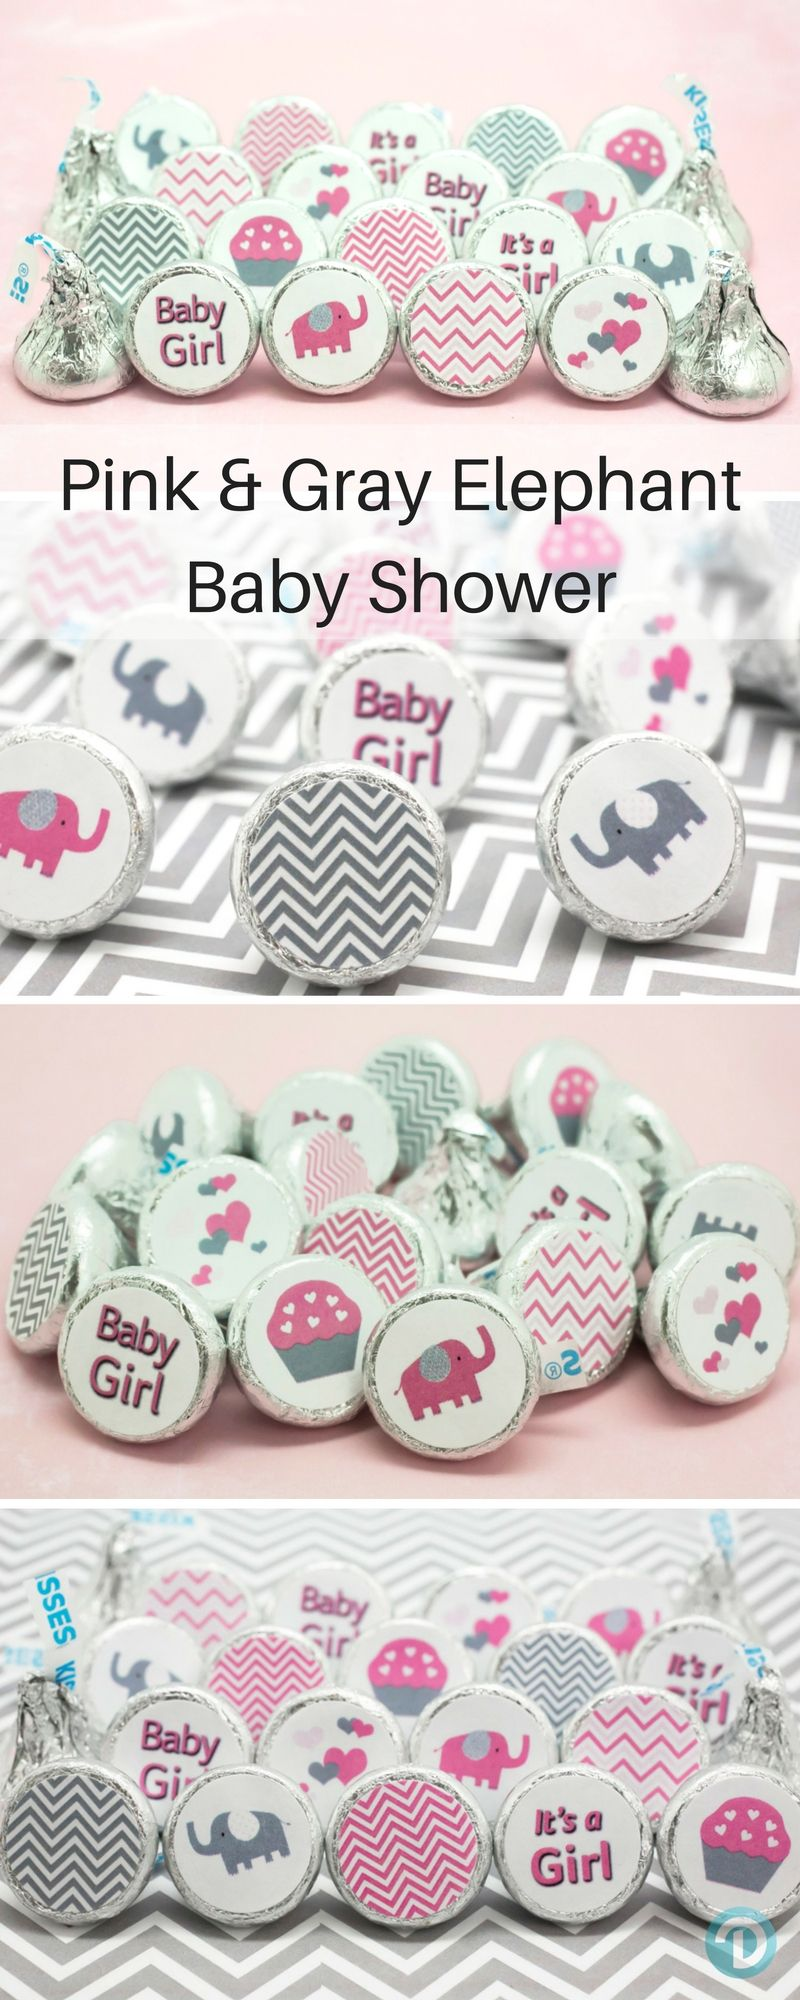 Itu0027s A Girl Elephant Pink And Gray Girl Baby Shower Party Favors Decorations U2026